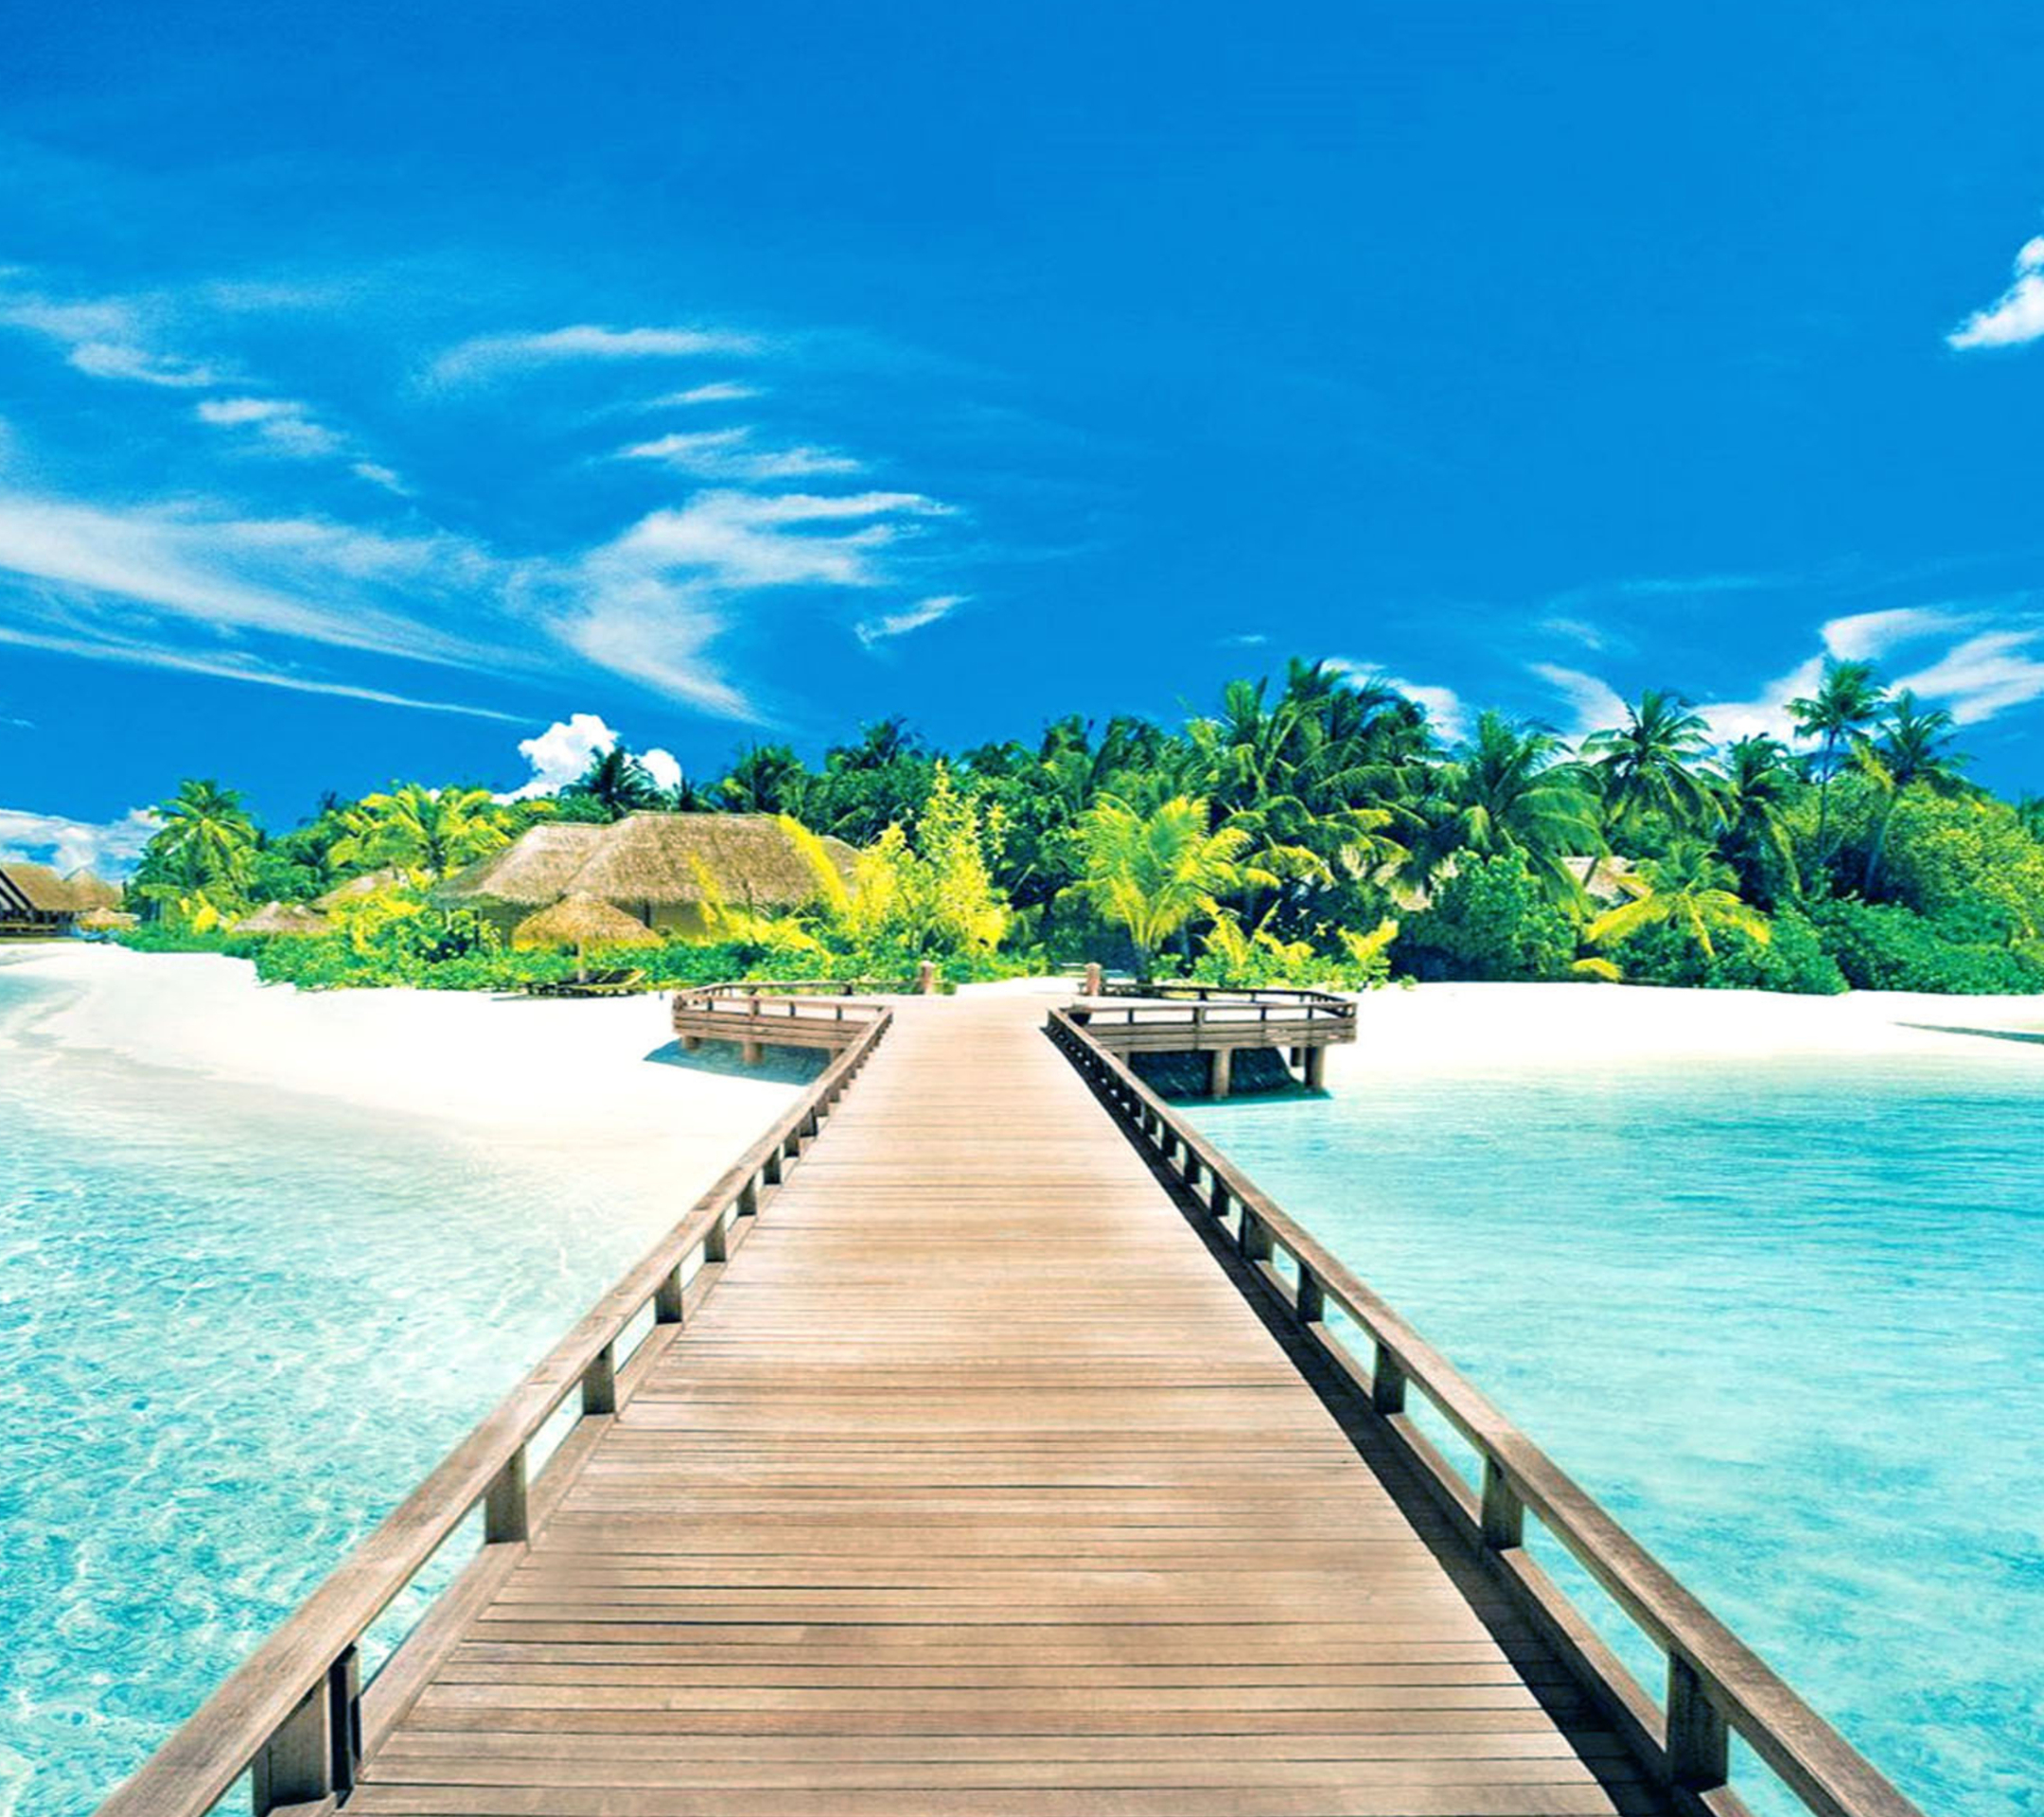 Beautiful Island Pictures For Wallpaper